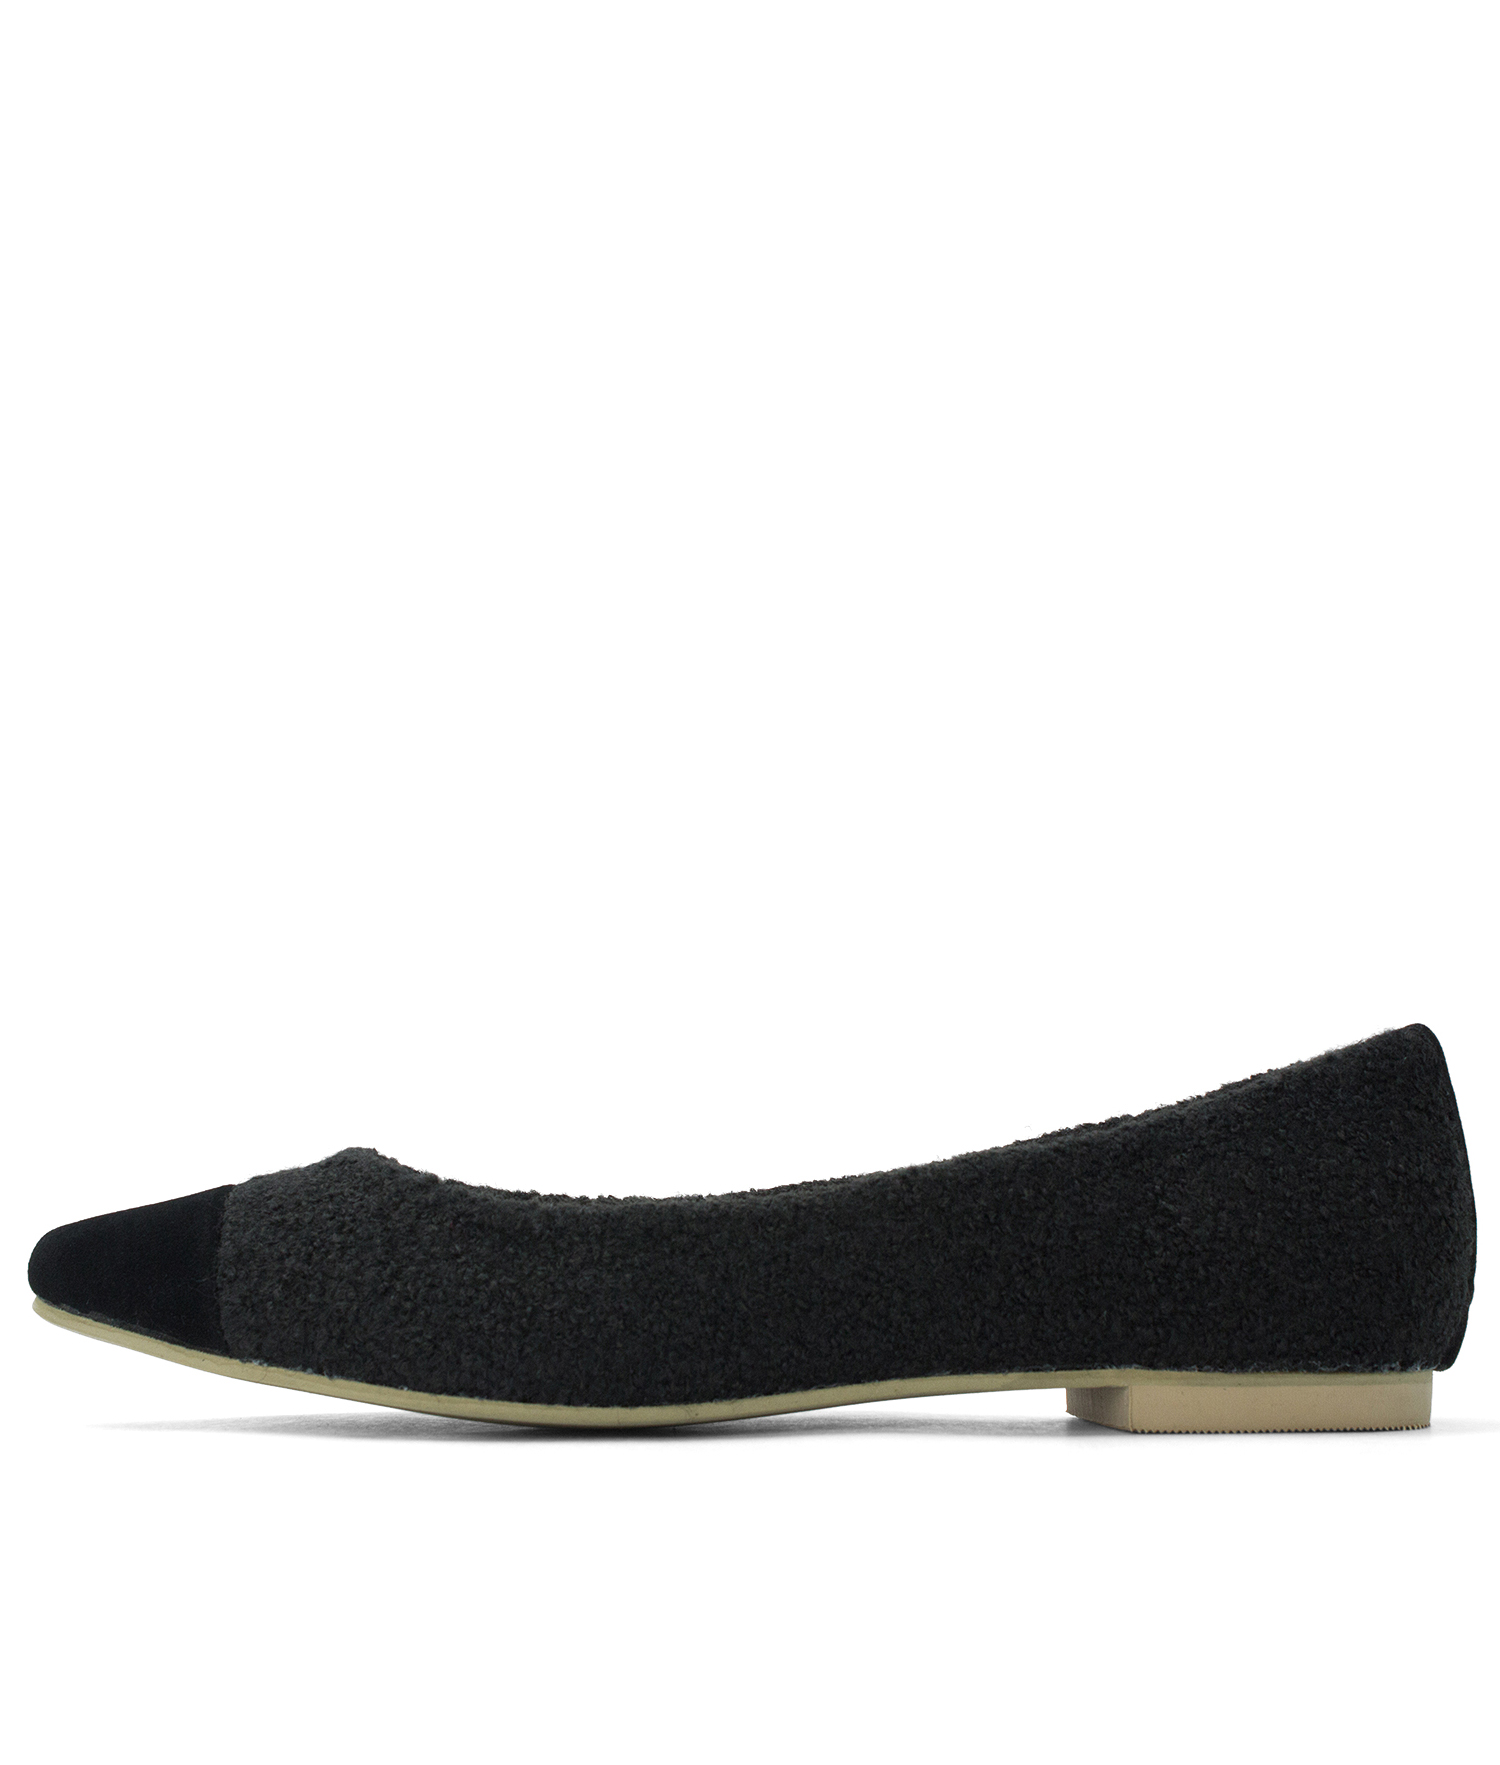 Boucle Pointy Toe Ballet Flats Black